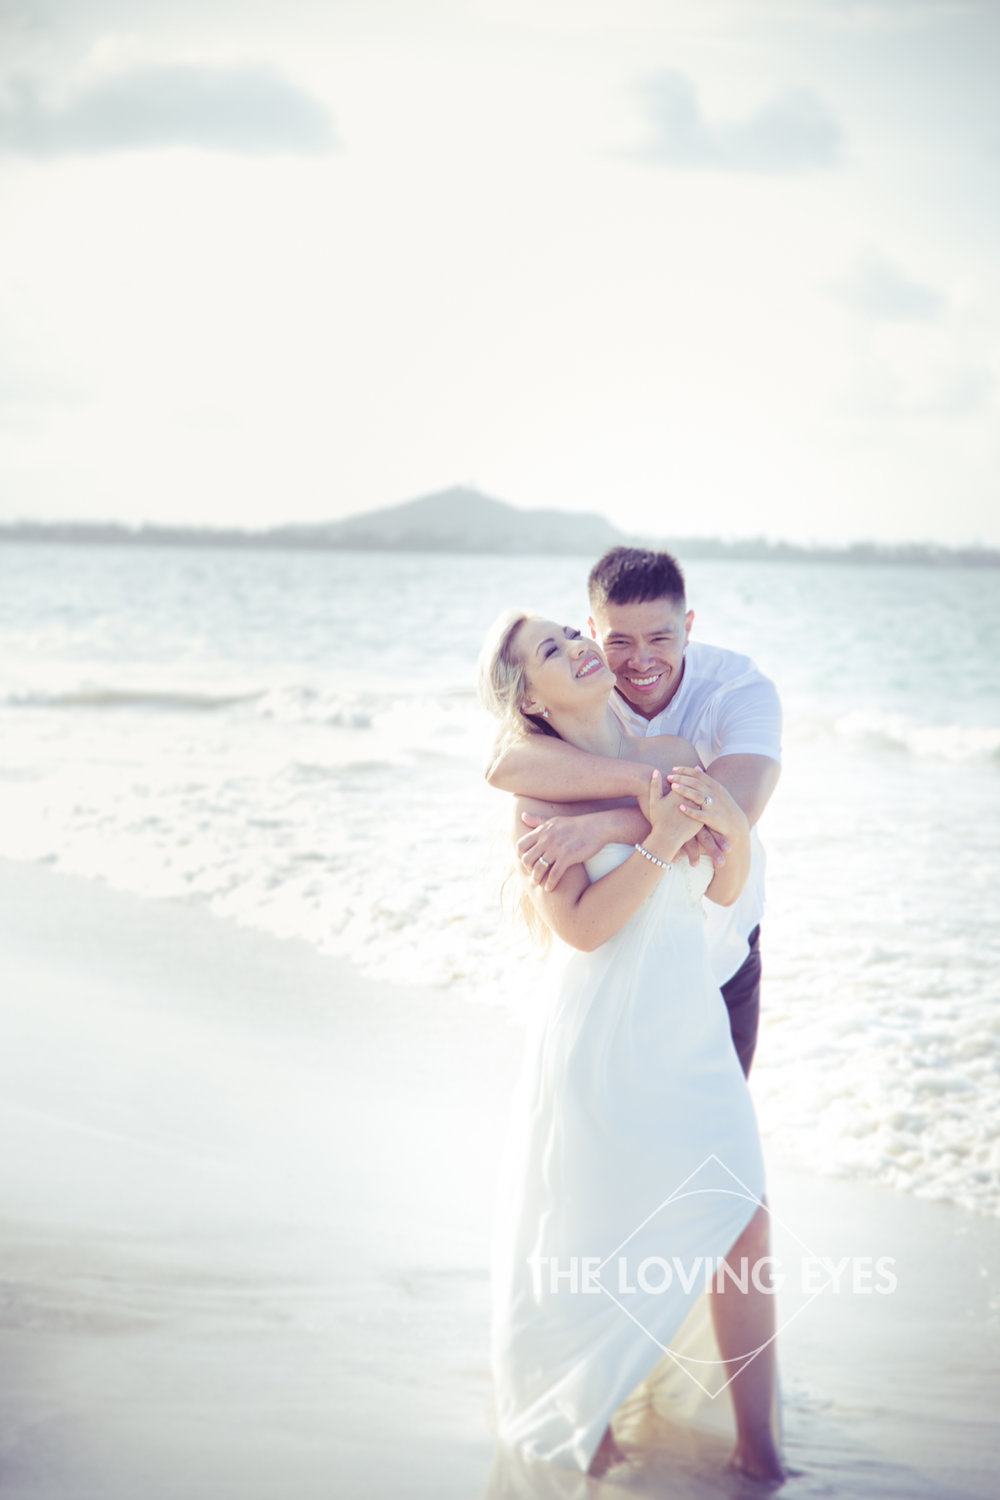 Couple hugging and playing on the beach during Hawaii engagement photography at Kailua Beach